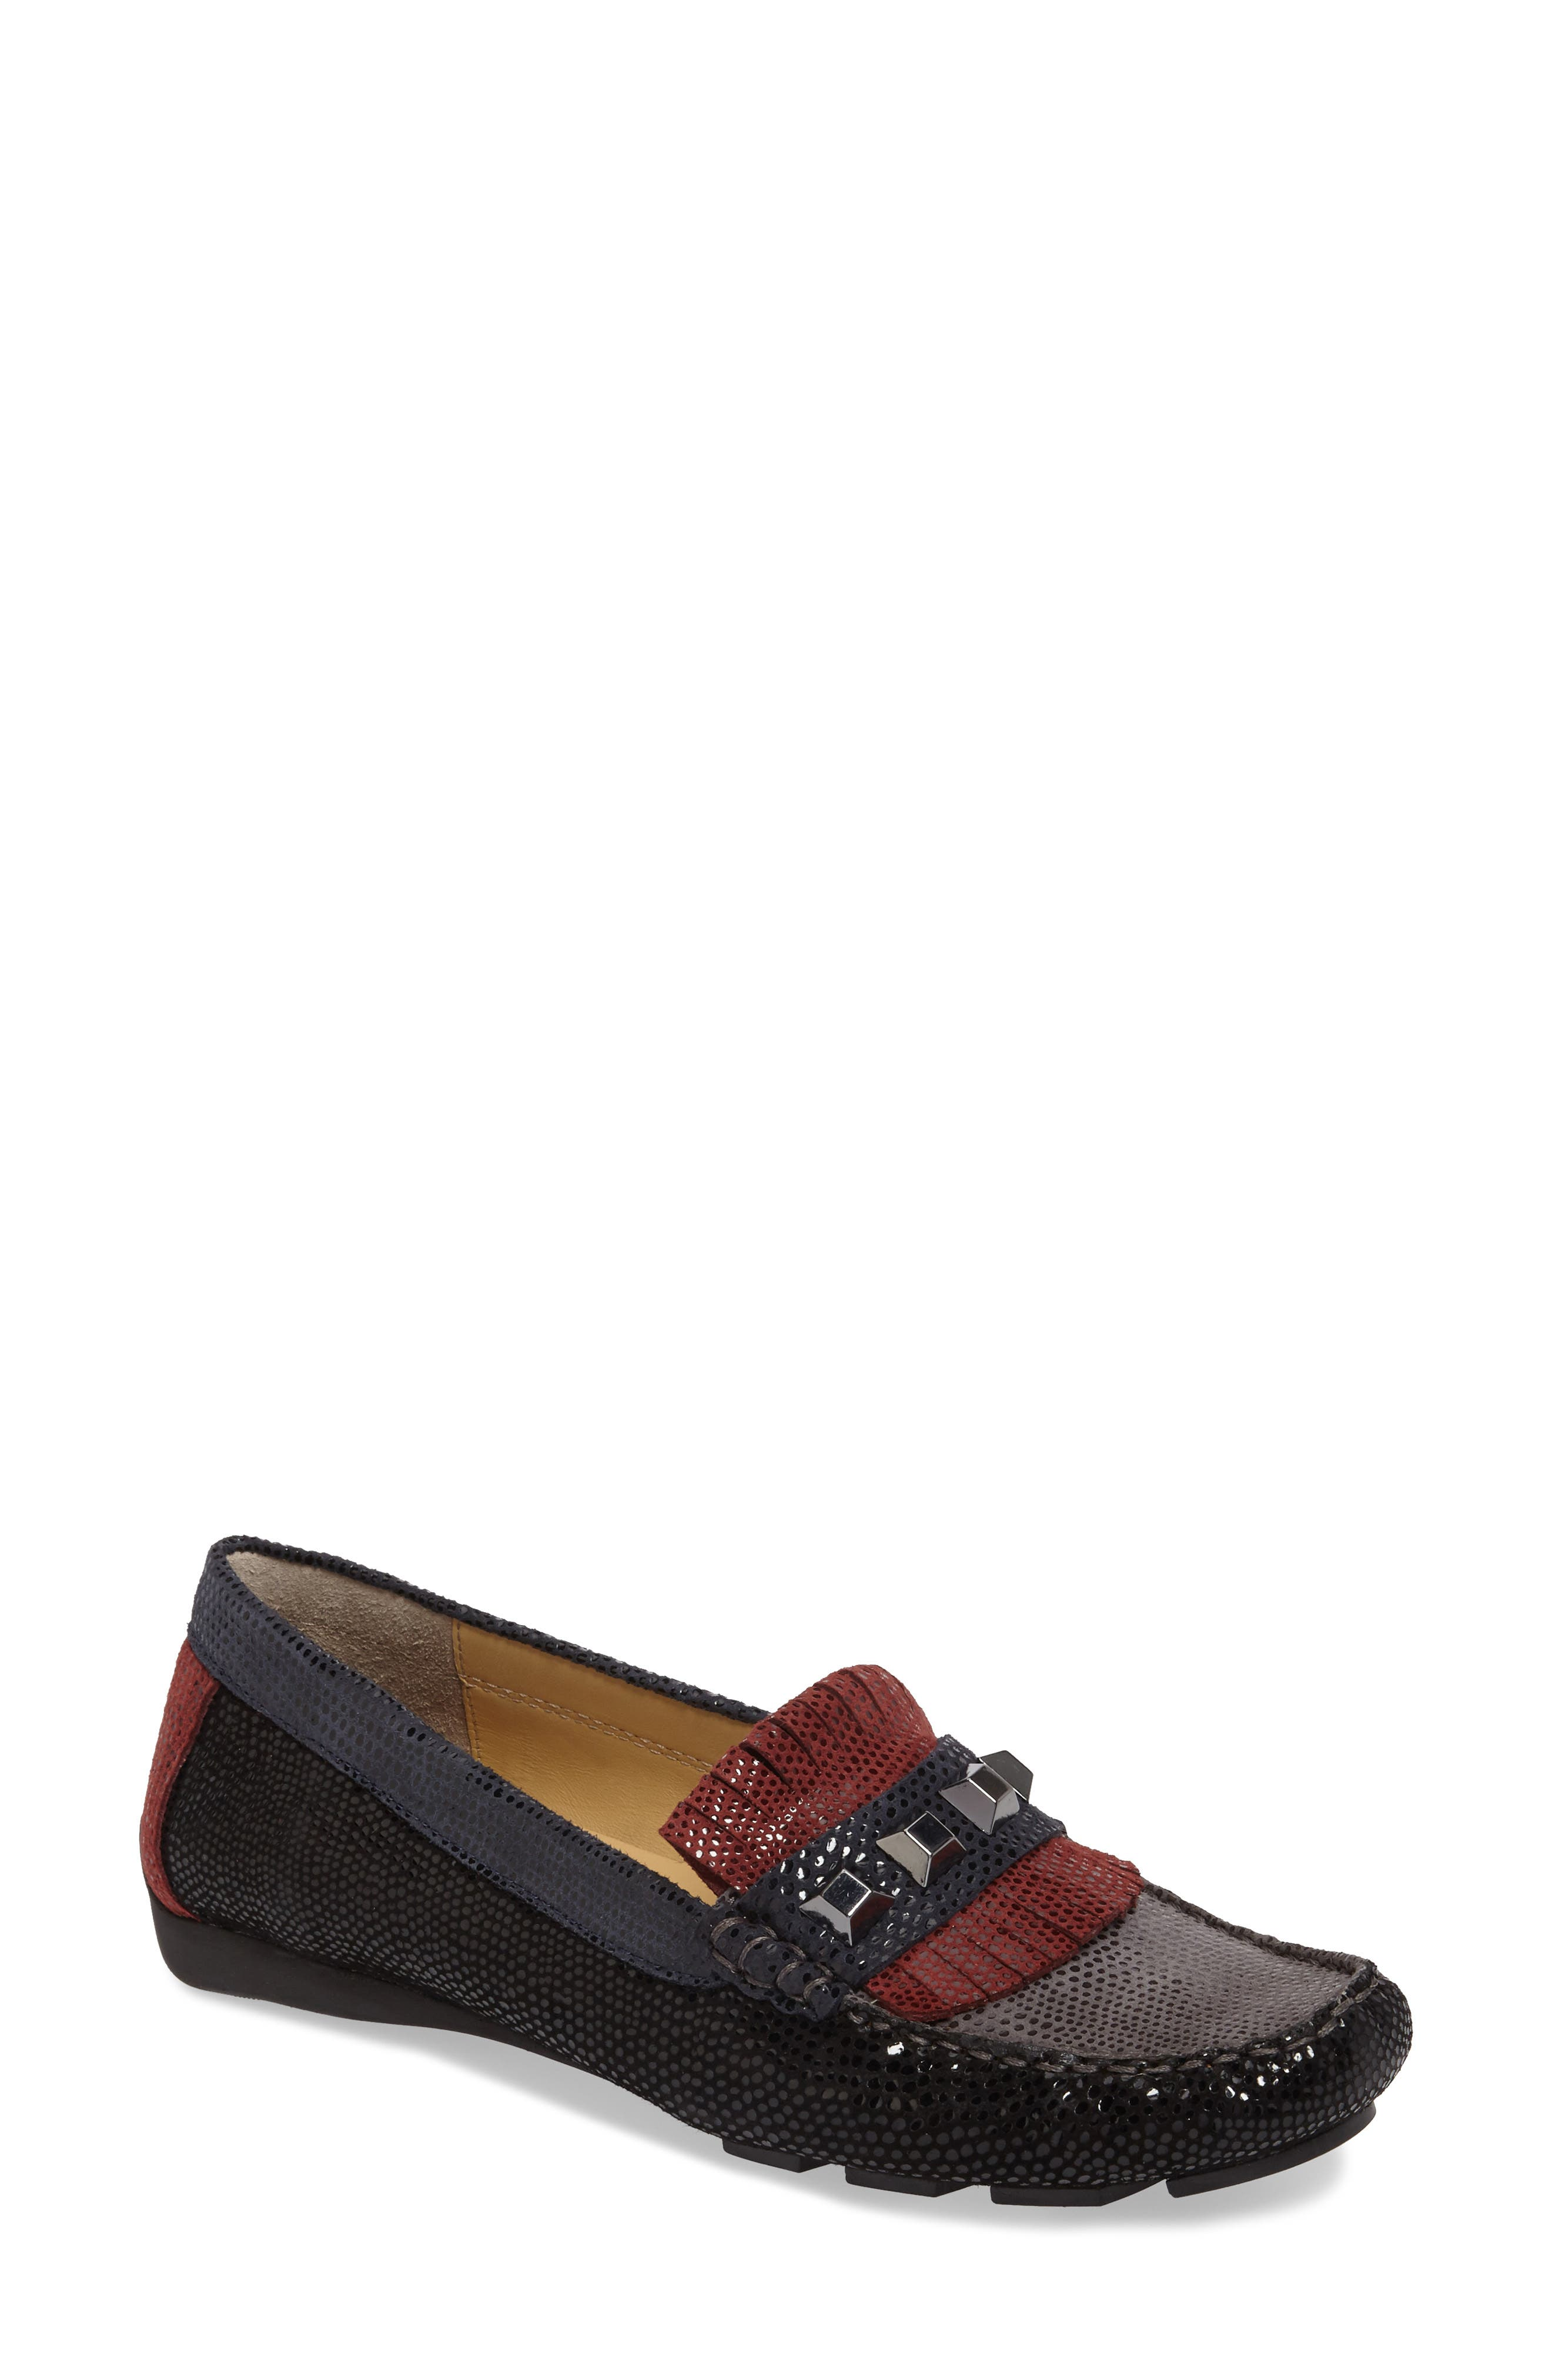 Rumble Loafer,                             Main thumbnail 1, color,                             001